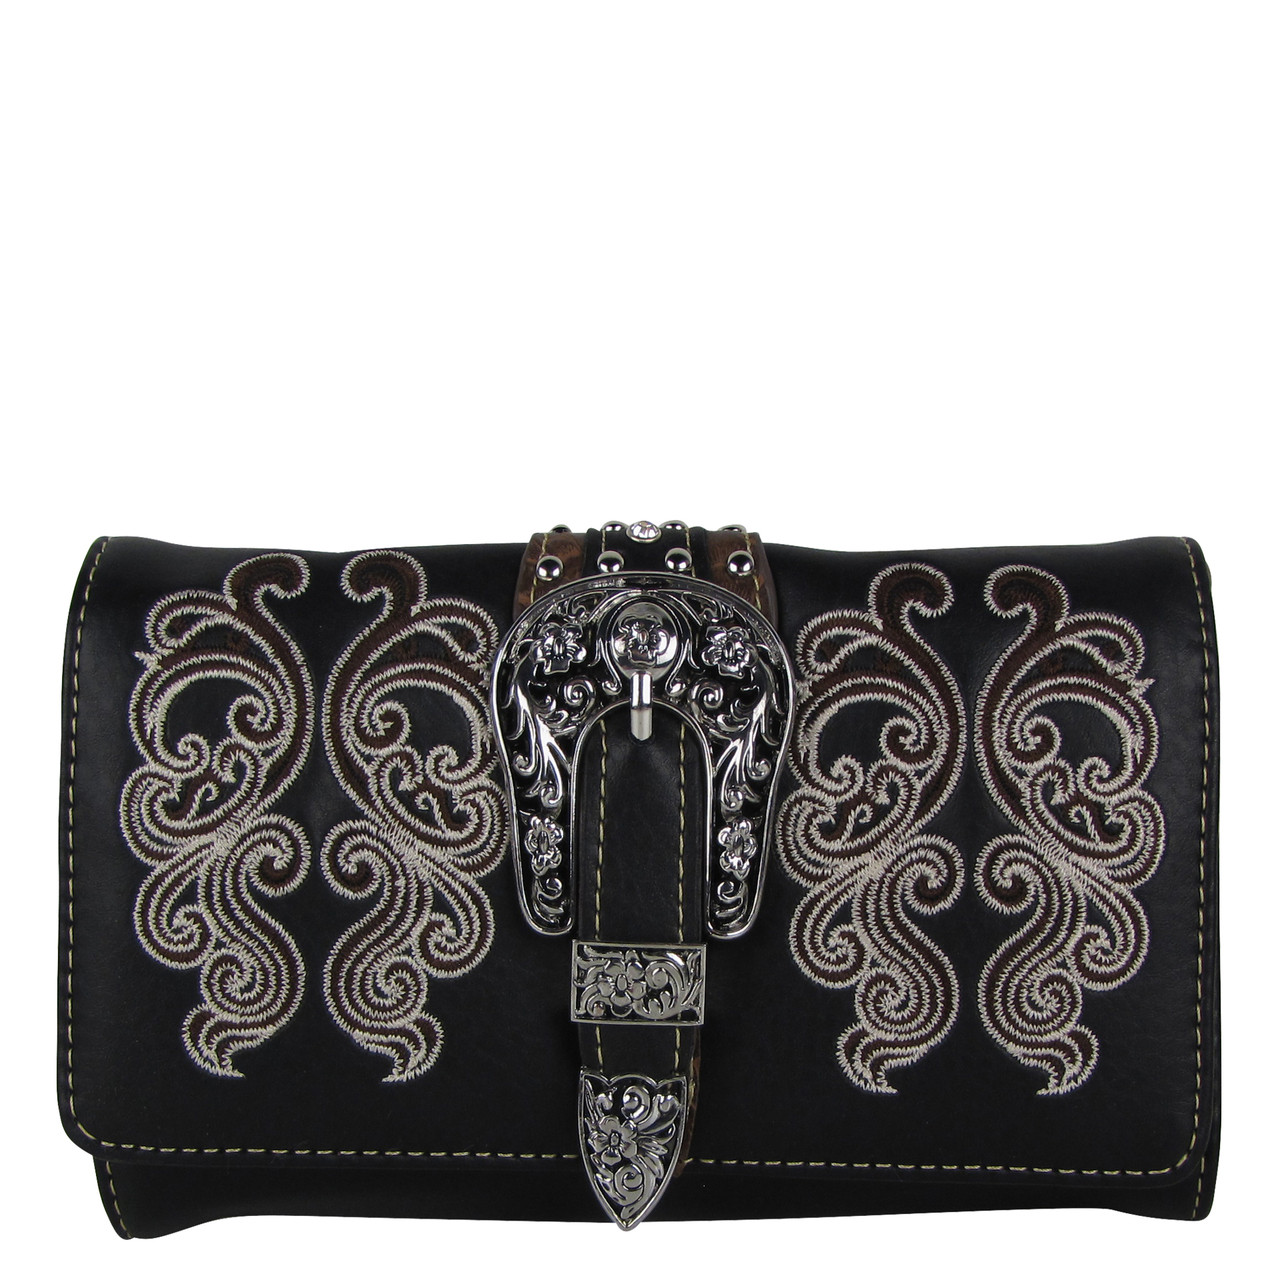 BLACK WESTERN BUCKLE LOOK CLUTCH TRIFOLD WALLET CW1-1277BLK